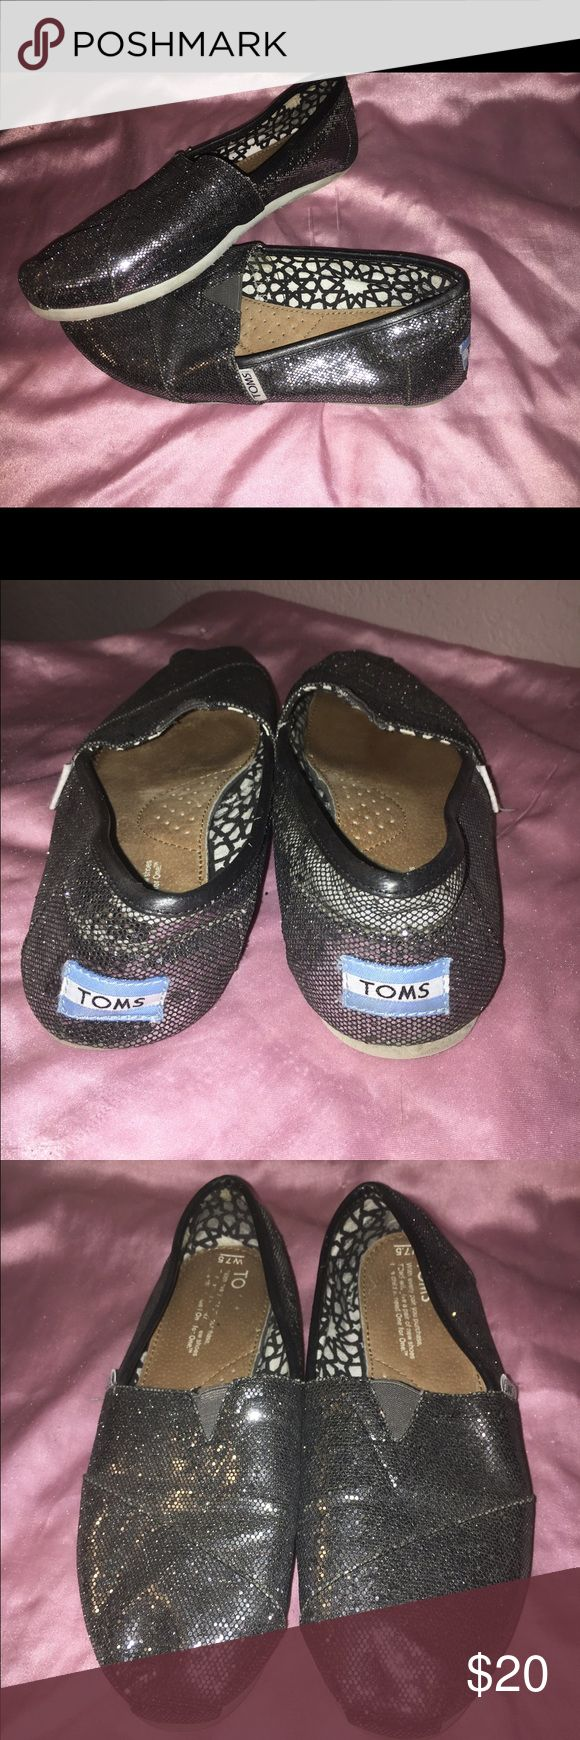 Glitter toms Navy glitter Only worn once! Classic glitter toms , dark grey color. TOMS Shoes Flats & Loafers